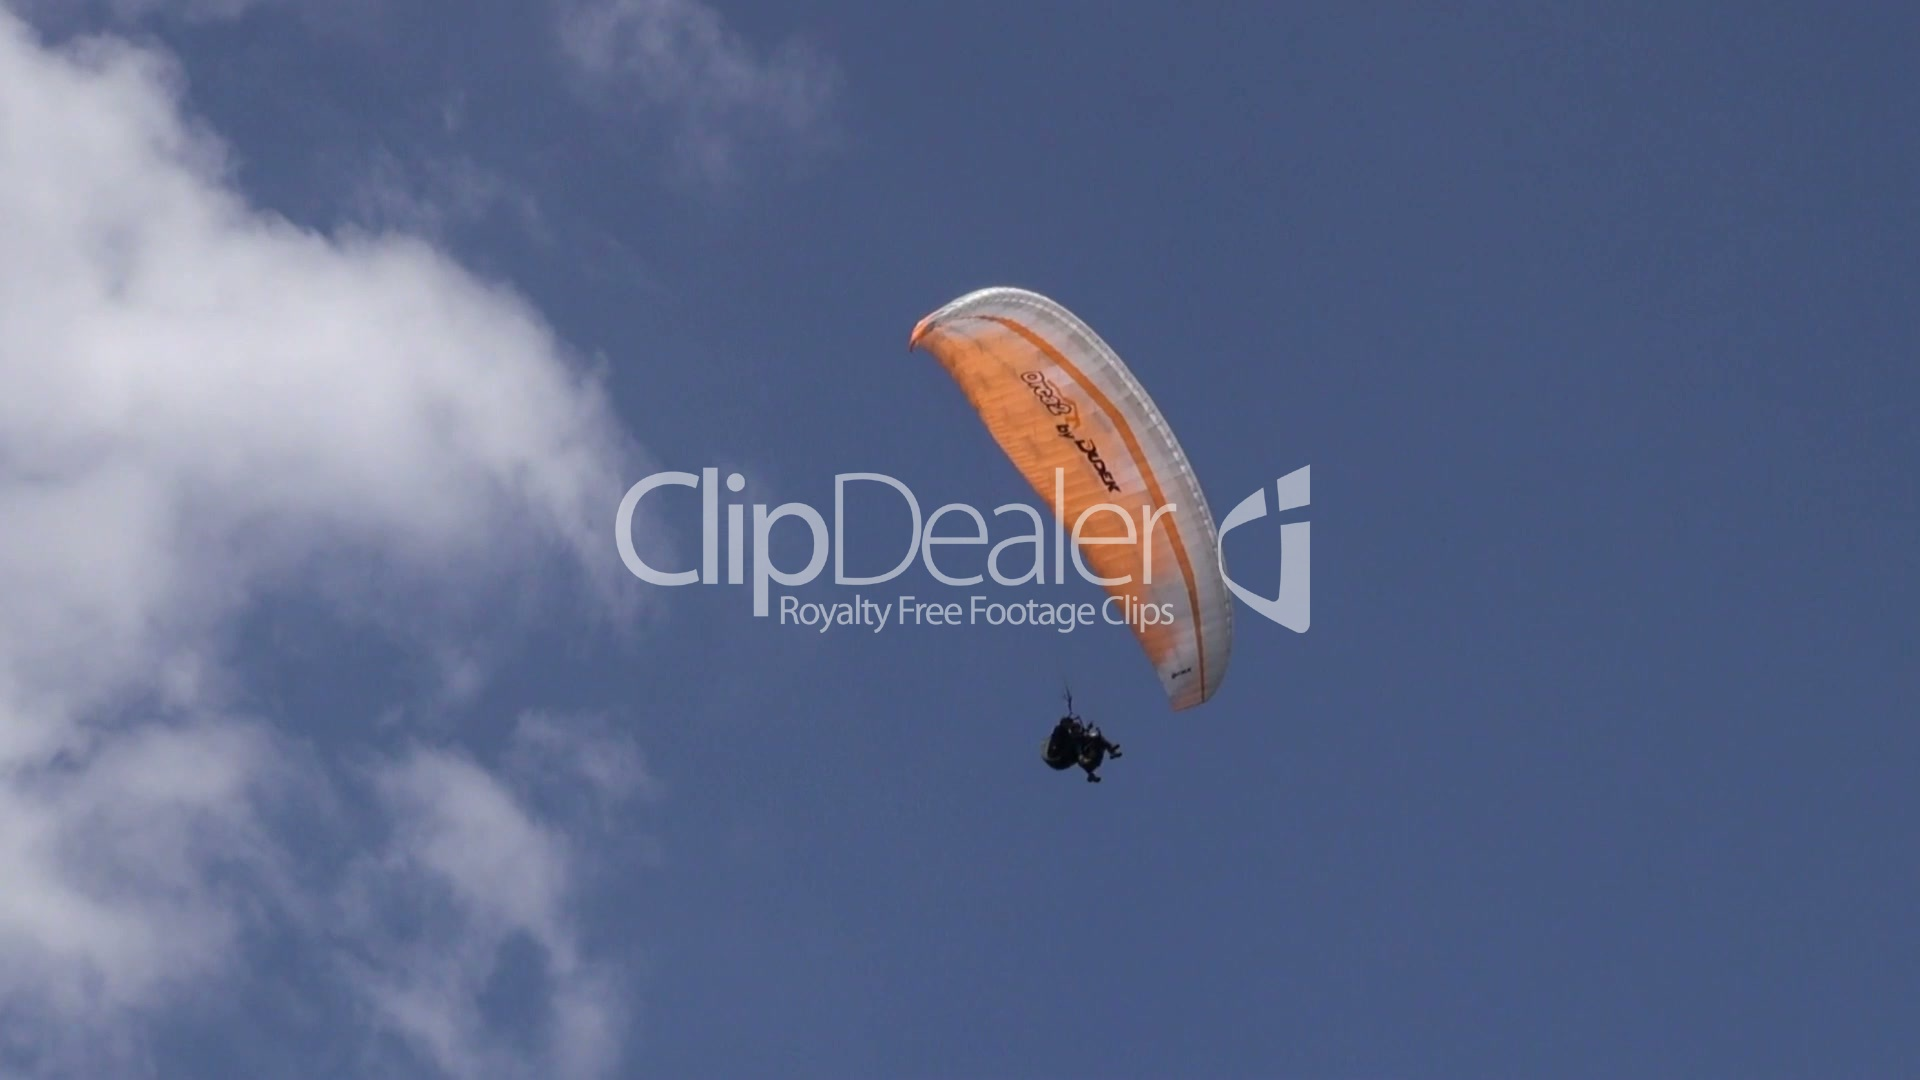 Parasailing in Clouds, Paragliding, Sky Diving: Royalty-free